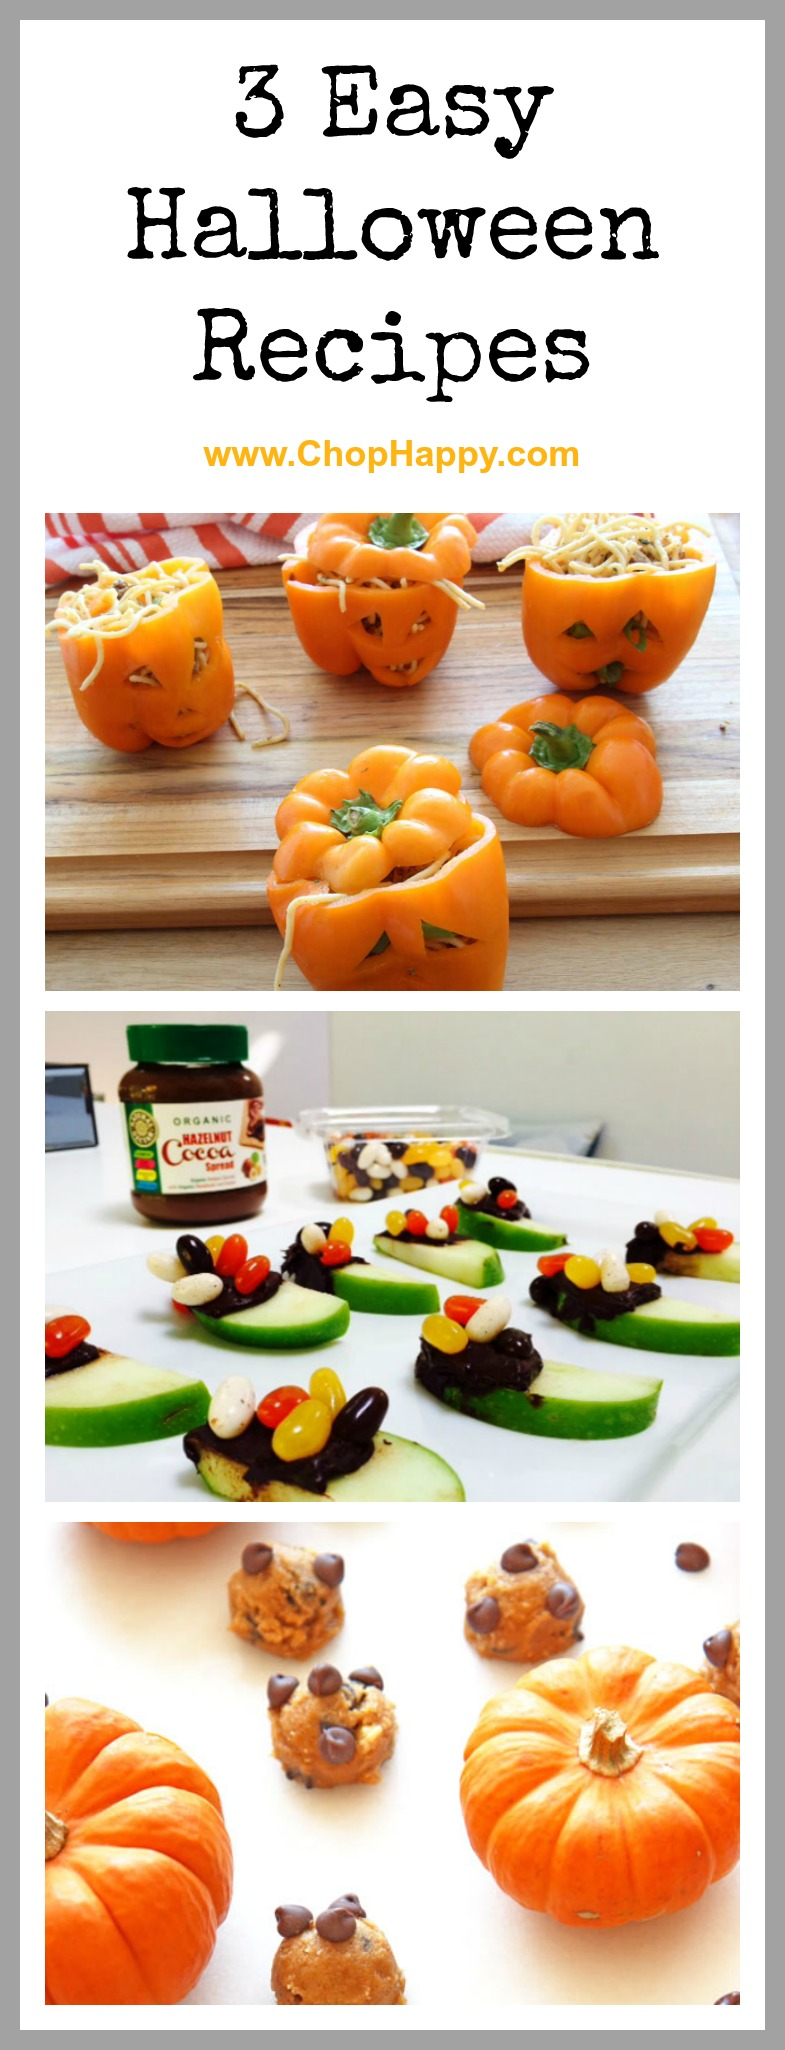 3 Easy Halloween Recipe- that are super simple, fun, and DIY Halloween recipes for the whole family. www.ChopHappy.com